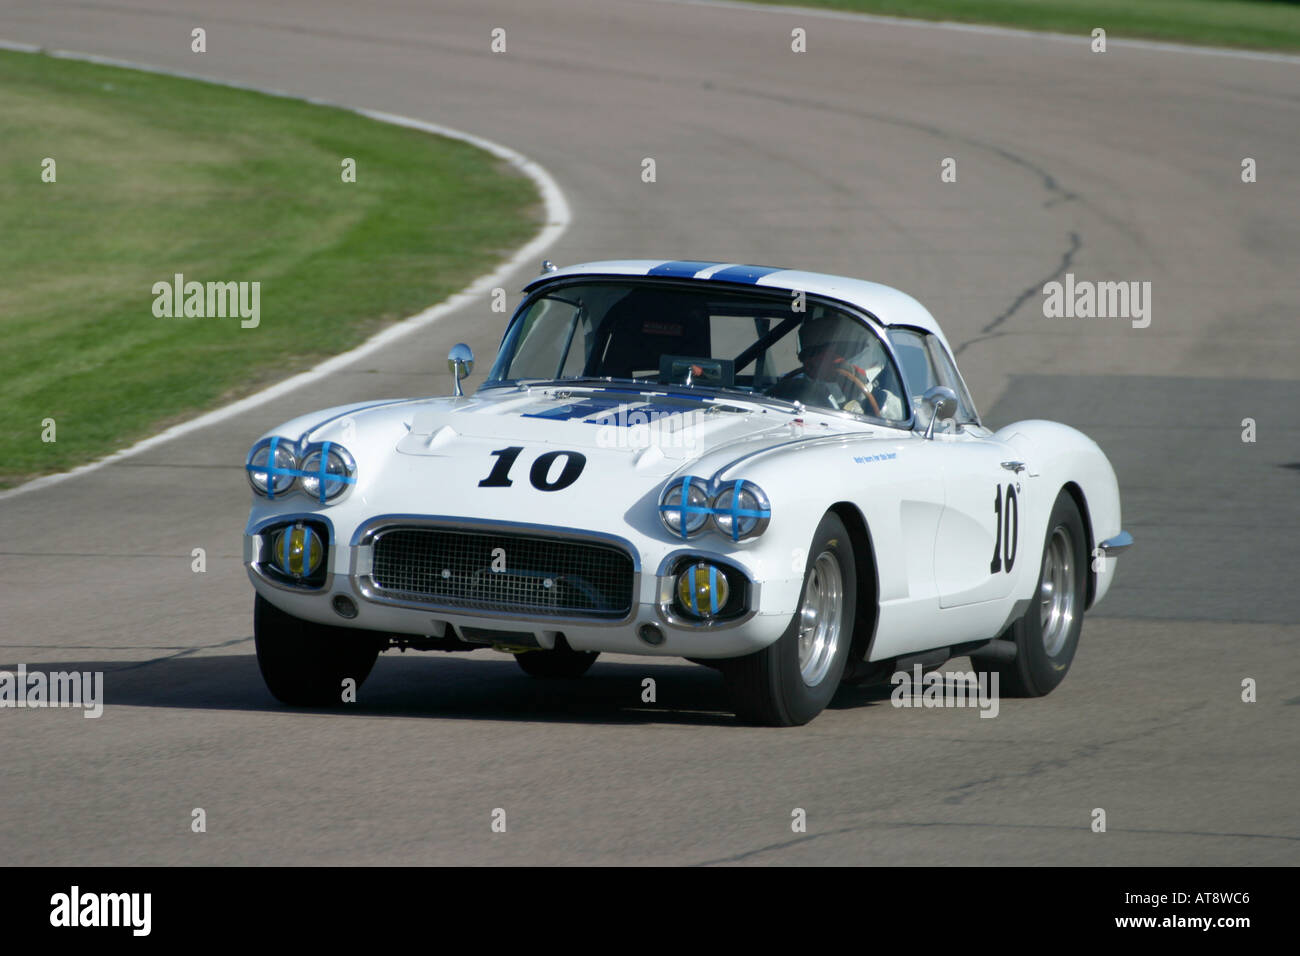 Chevrolet Corvette 1958 fährt durch Madgwick Ecke bei Goodwood Revival, Sussex, UK. Stockbild